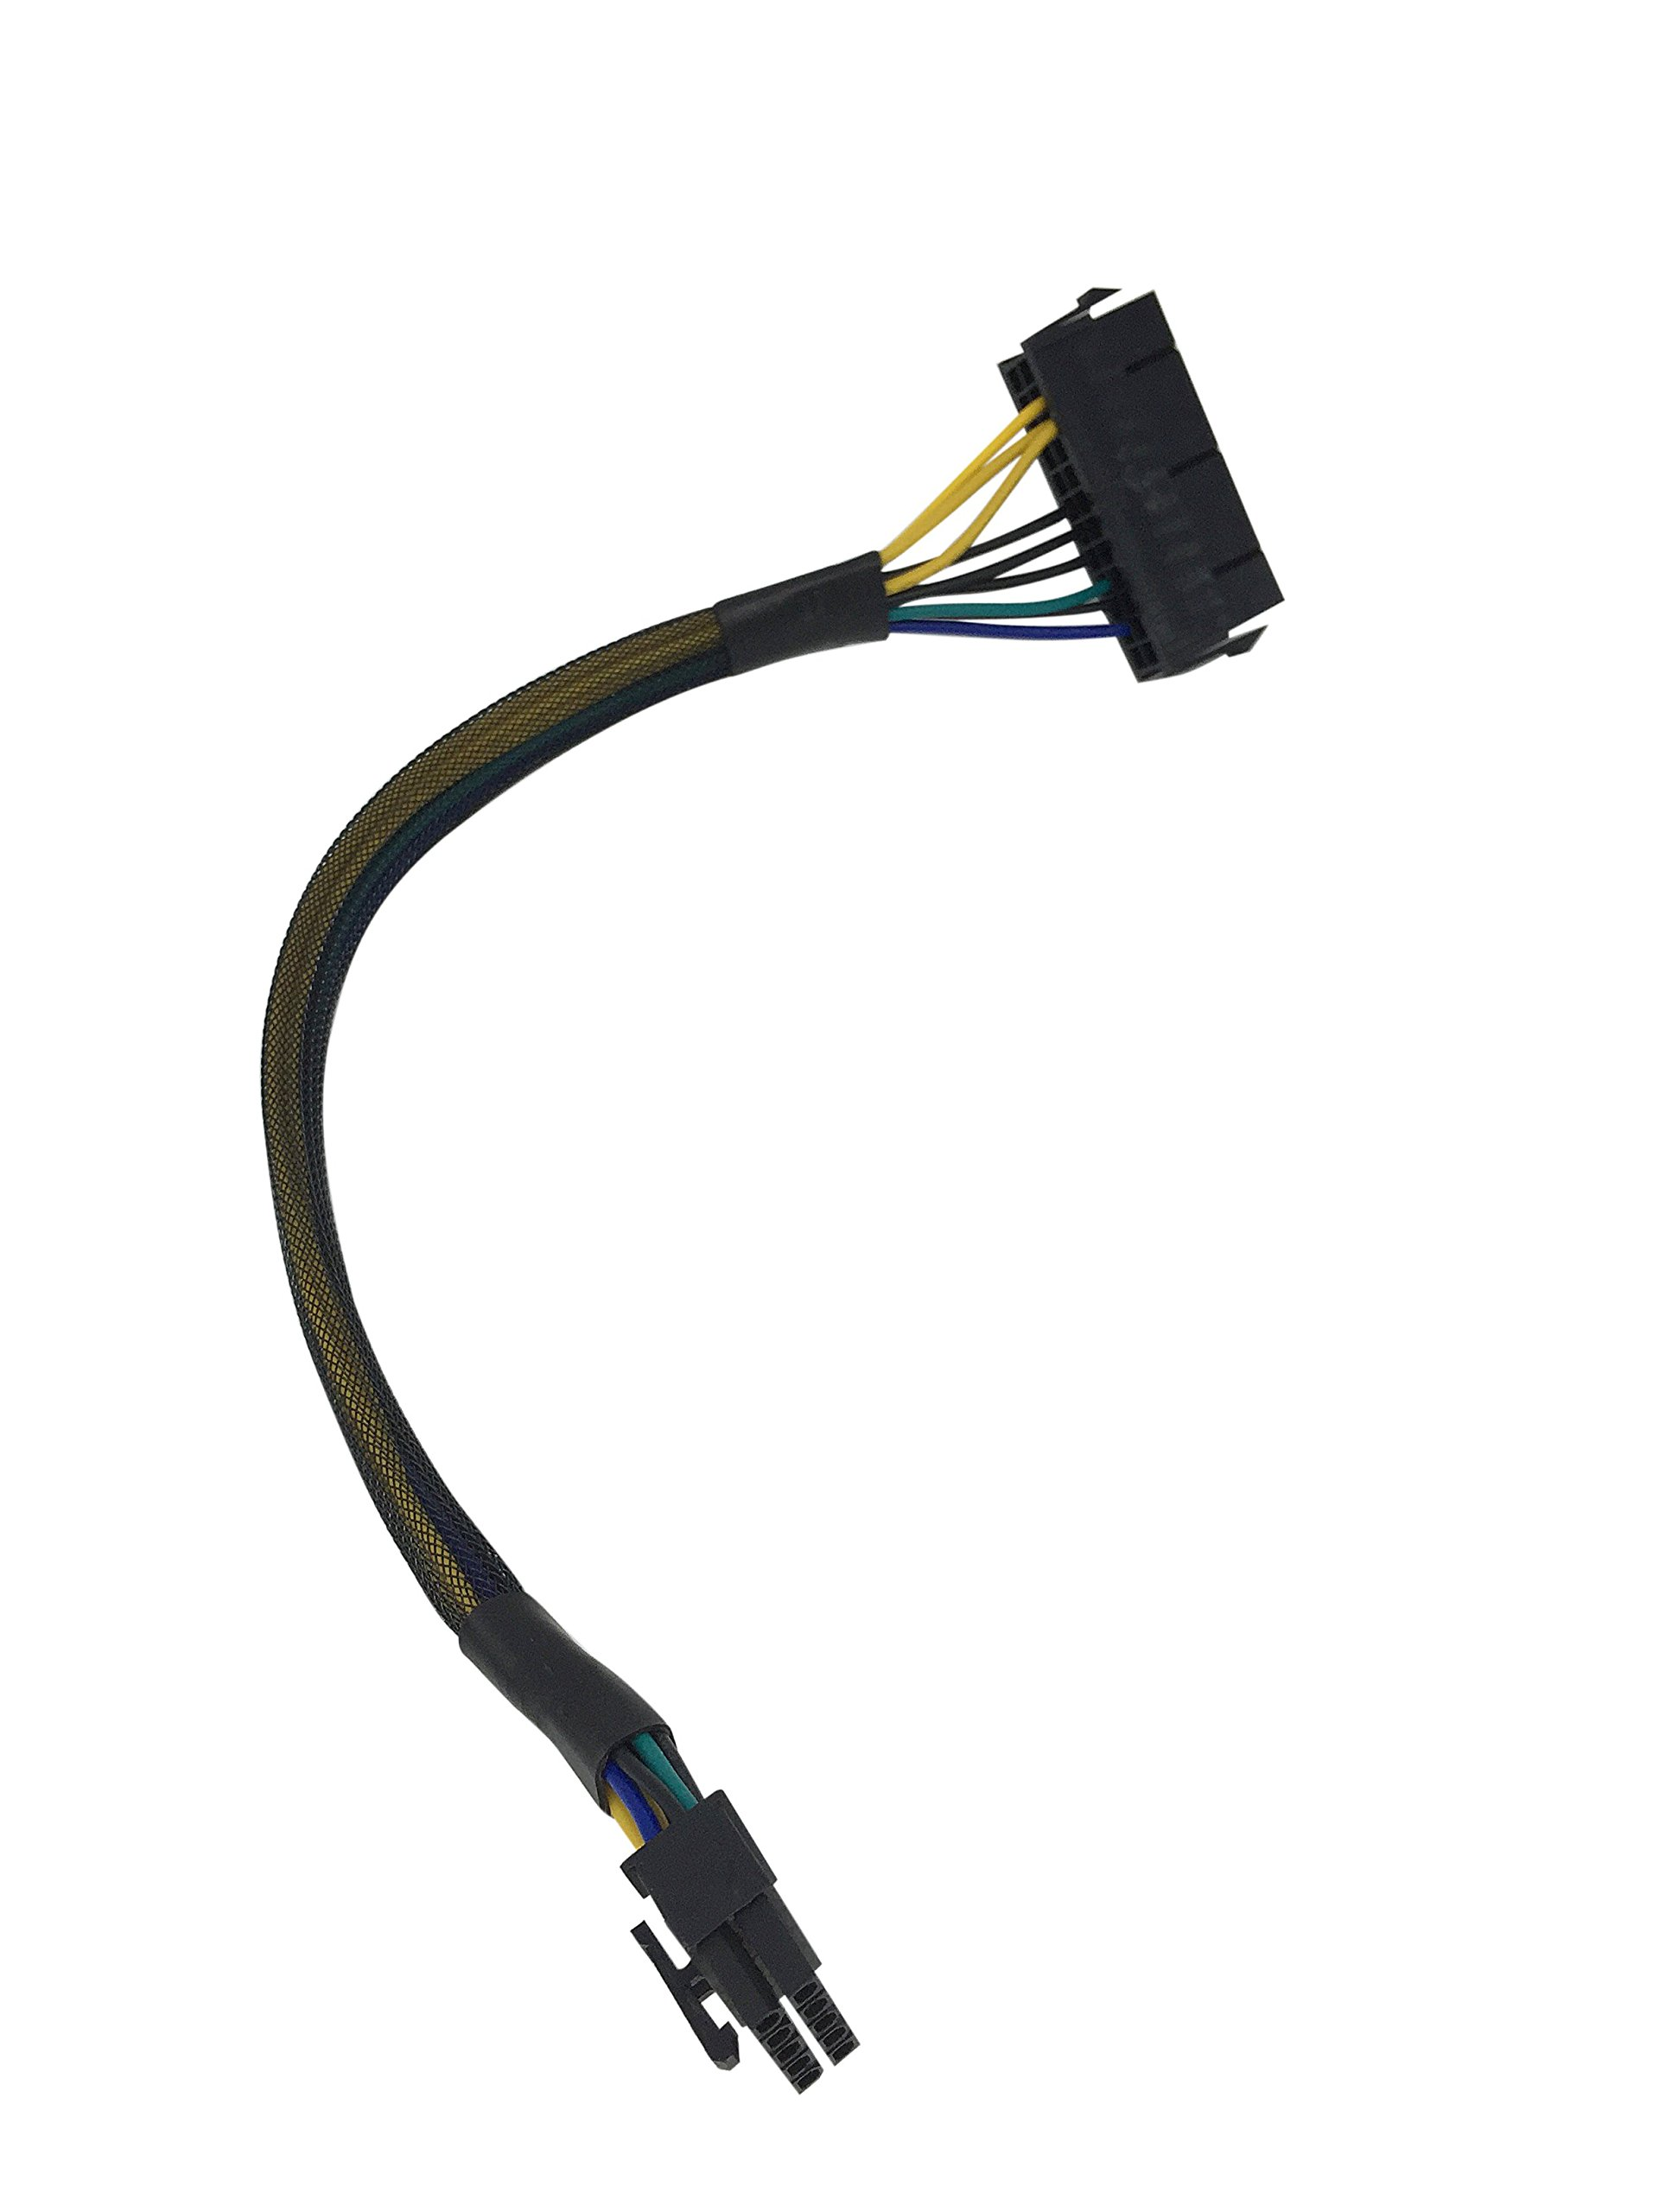 Eyeboot 24 Pin to 10 Pin Power Supply ATX PSU Adapter Cable for computer PC Motherboard